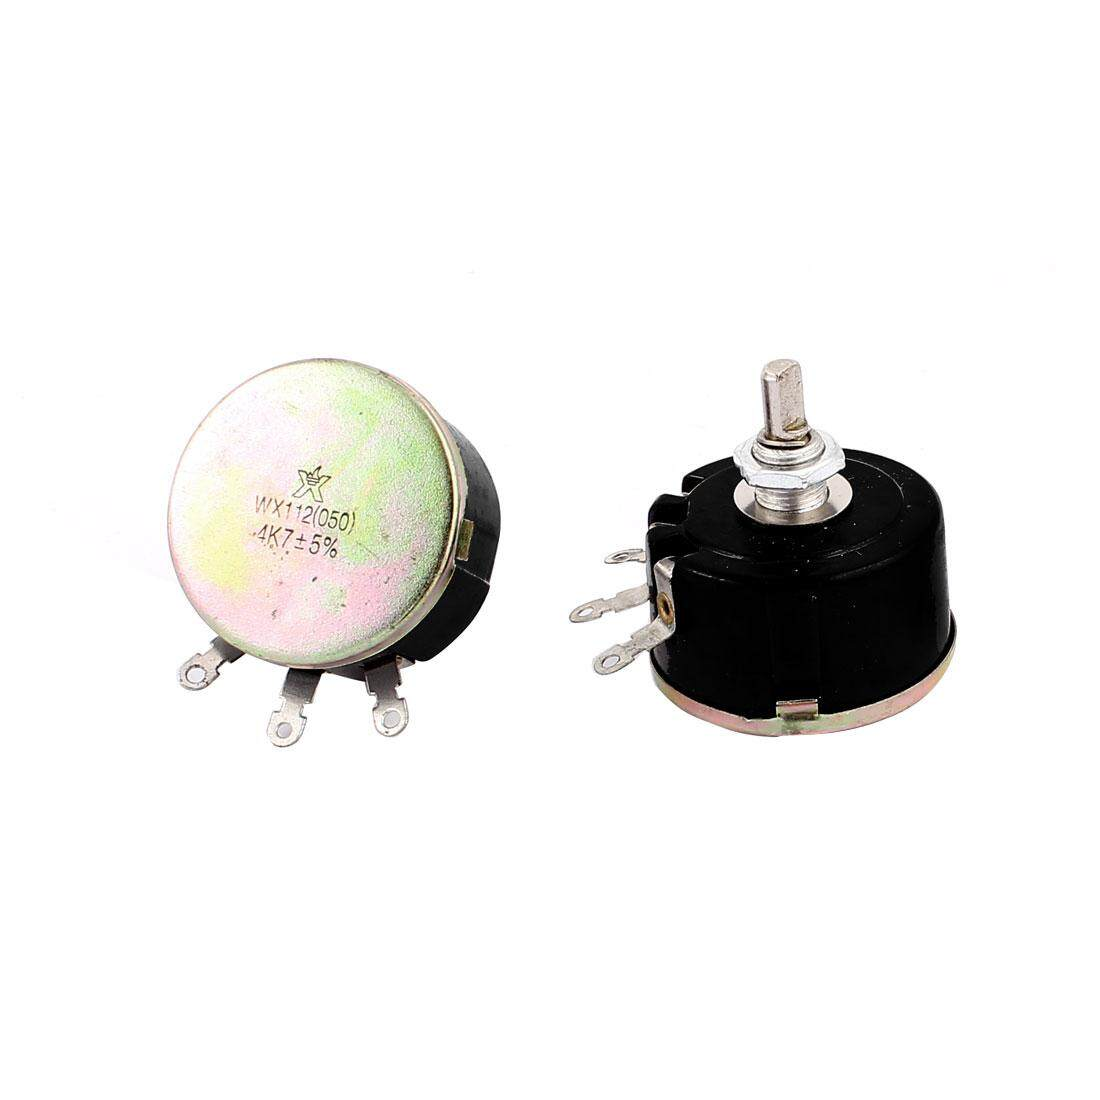 Buy Sell Cheapest Axa Ac220v Potentiometer Best Quality Product Wiring A As Variable Resistor 2pcs 5w 47k Ohm 3 Terminal Wire Wound